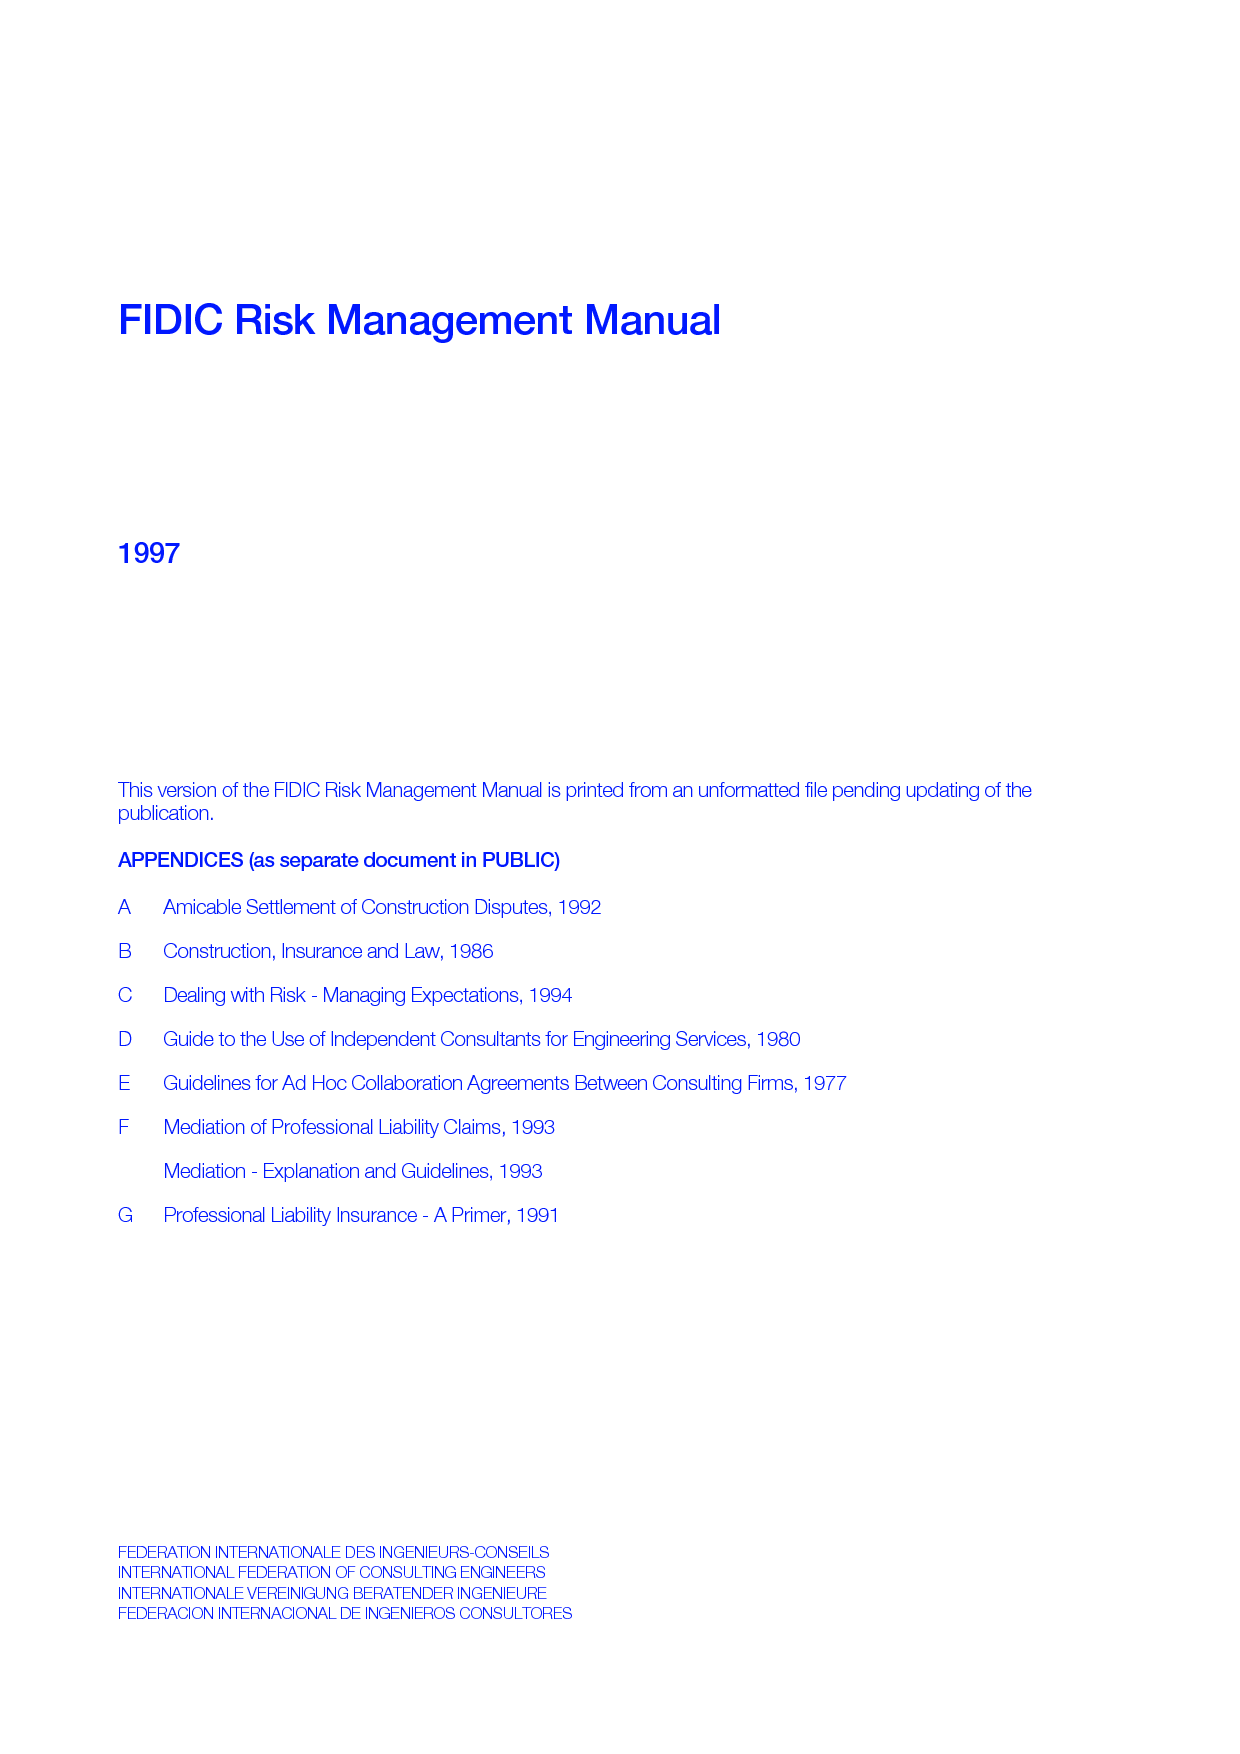 foundations of risk management and insurance 1st edition pdf